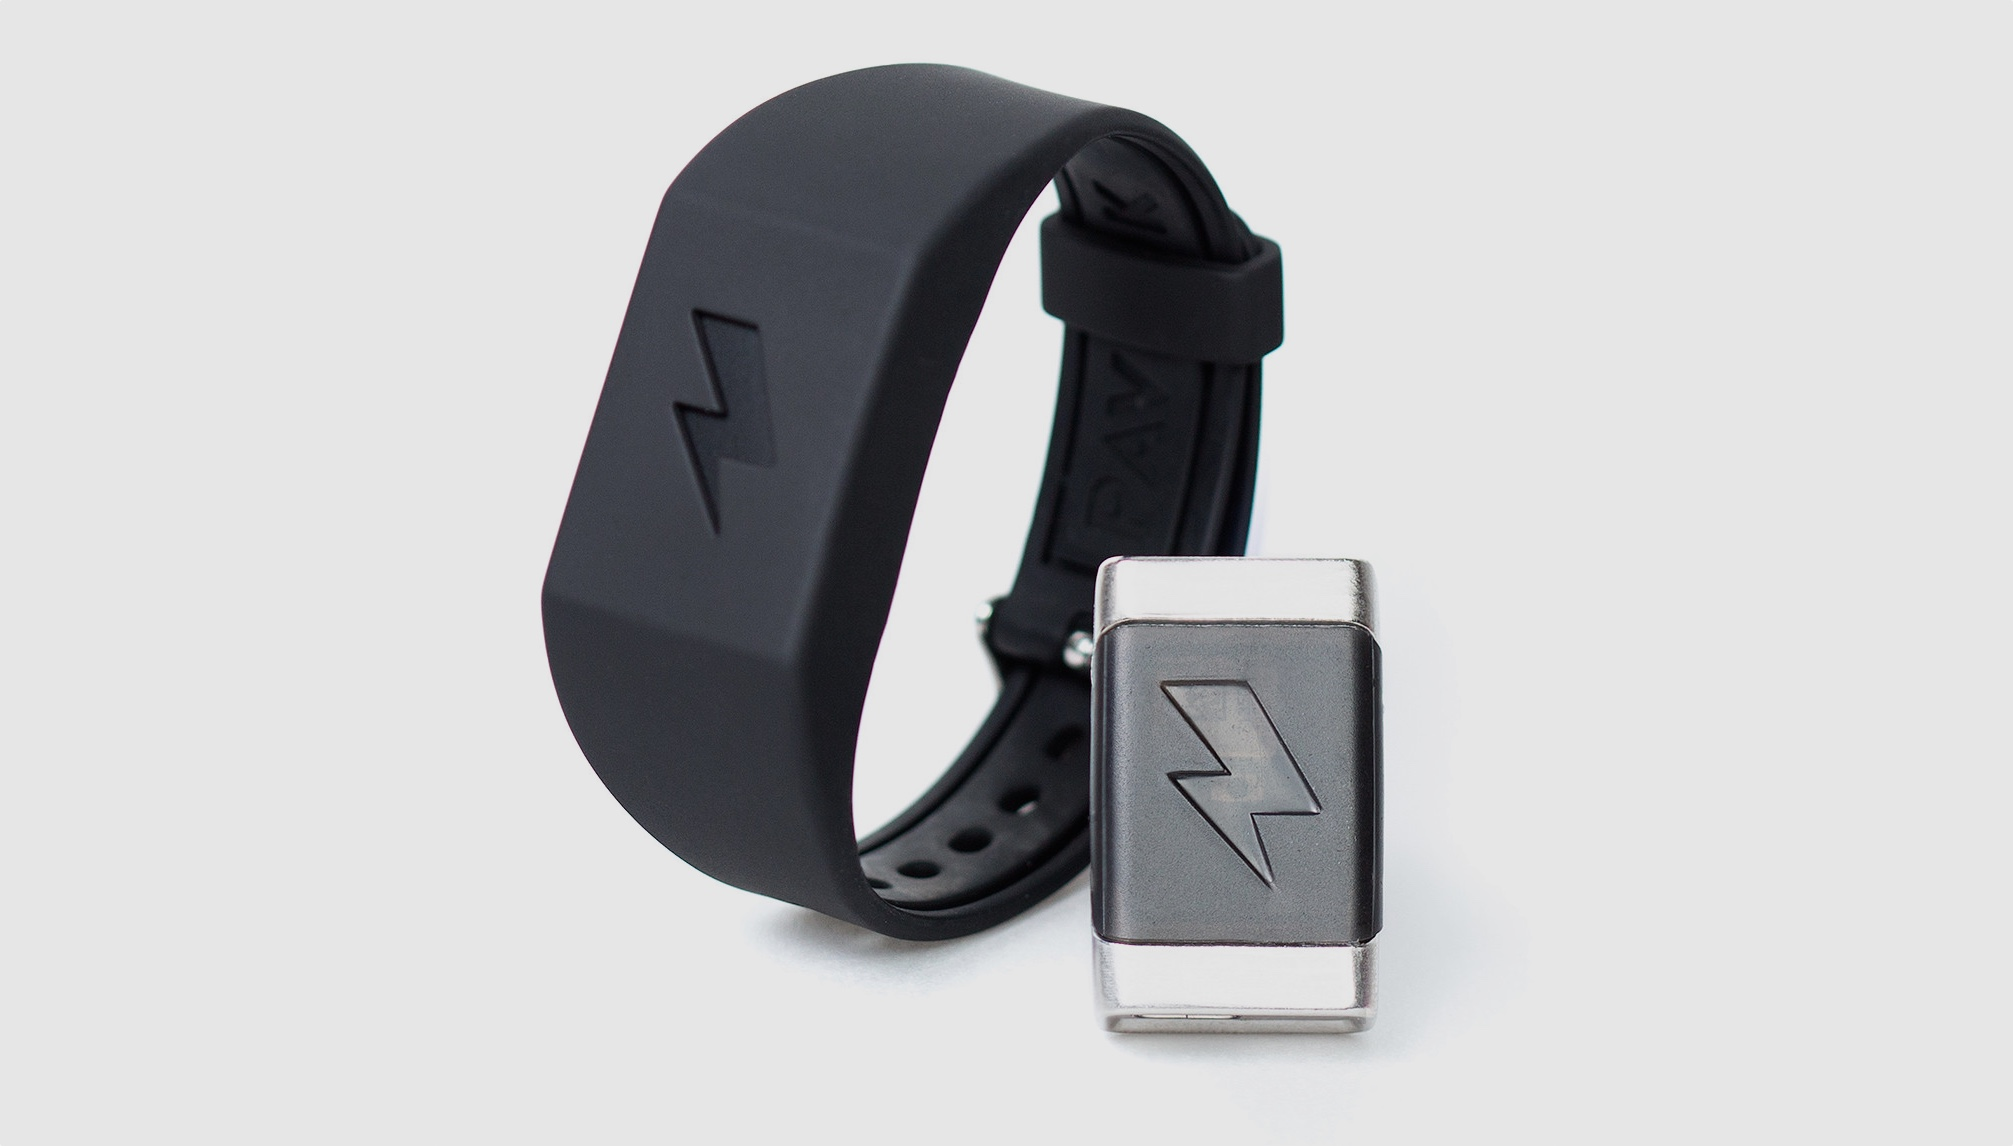 Pavlok launches electric shock alarm clock